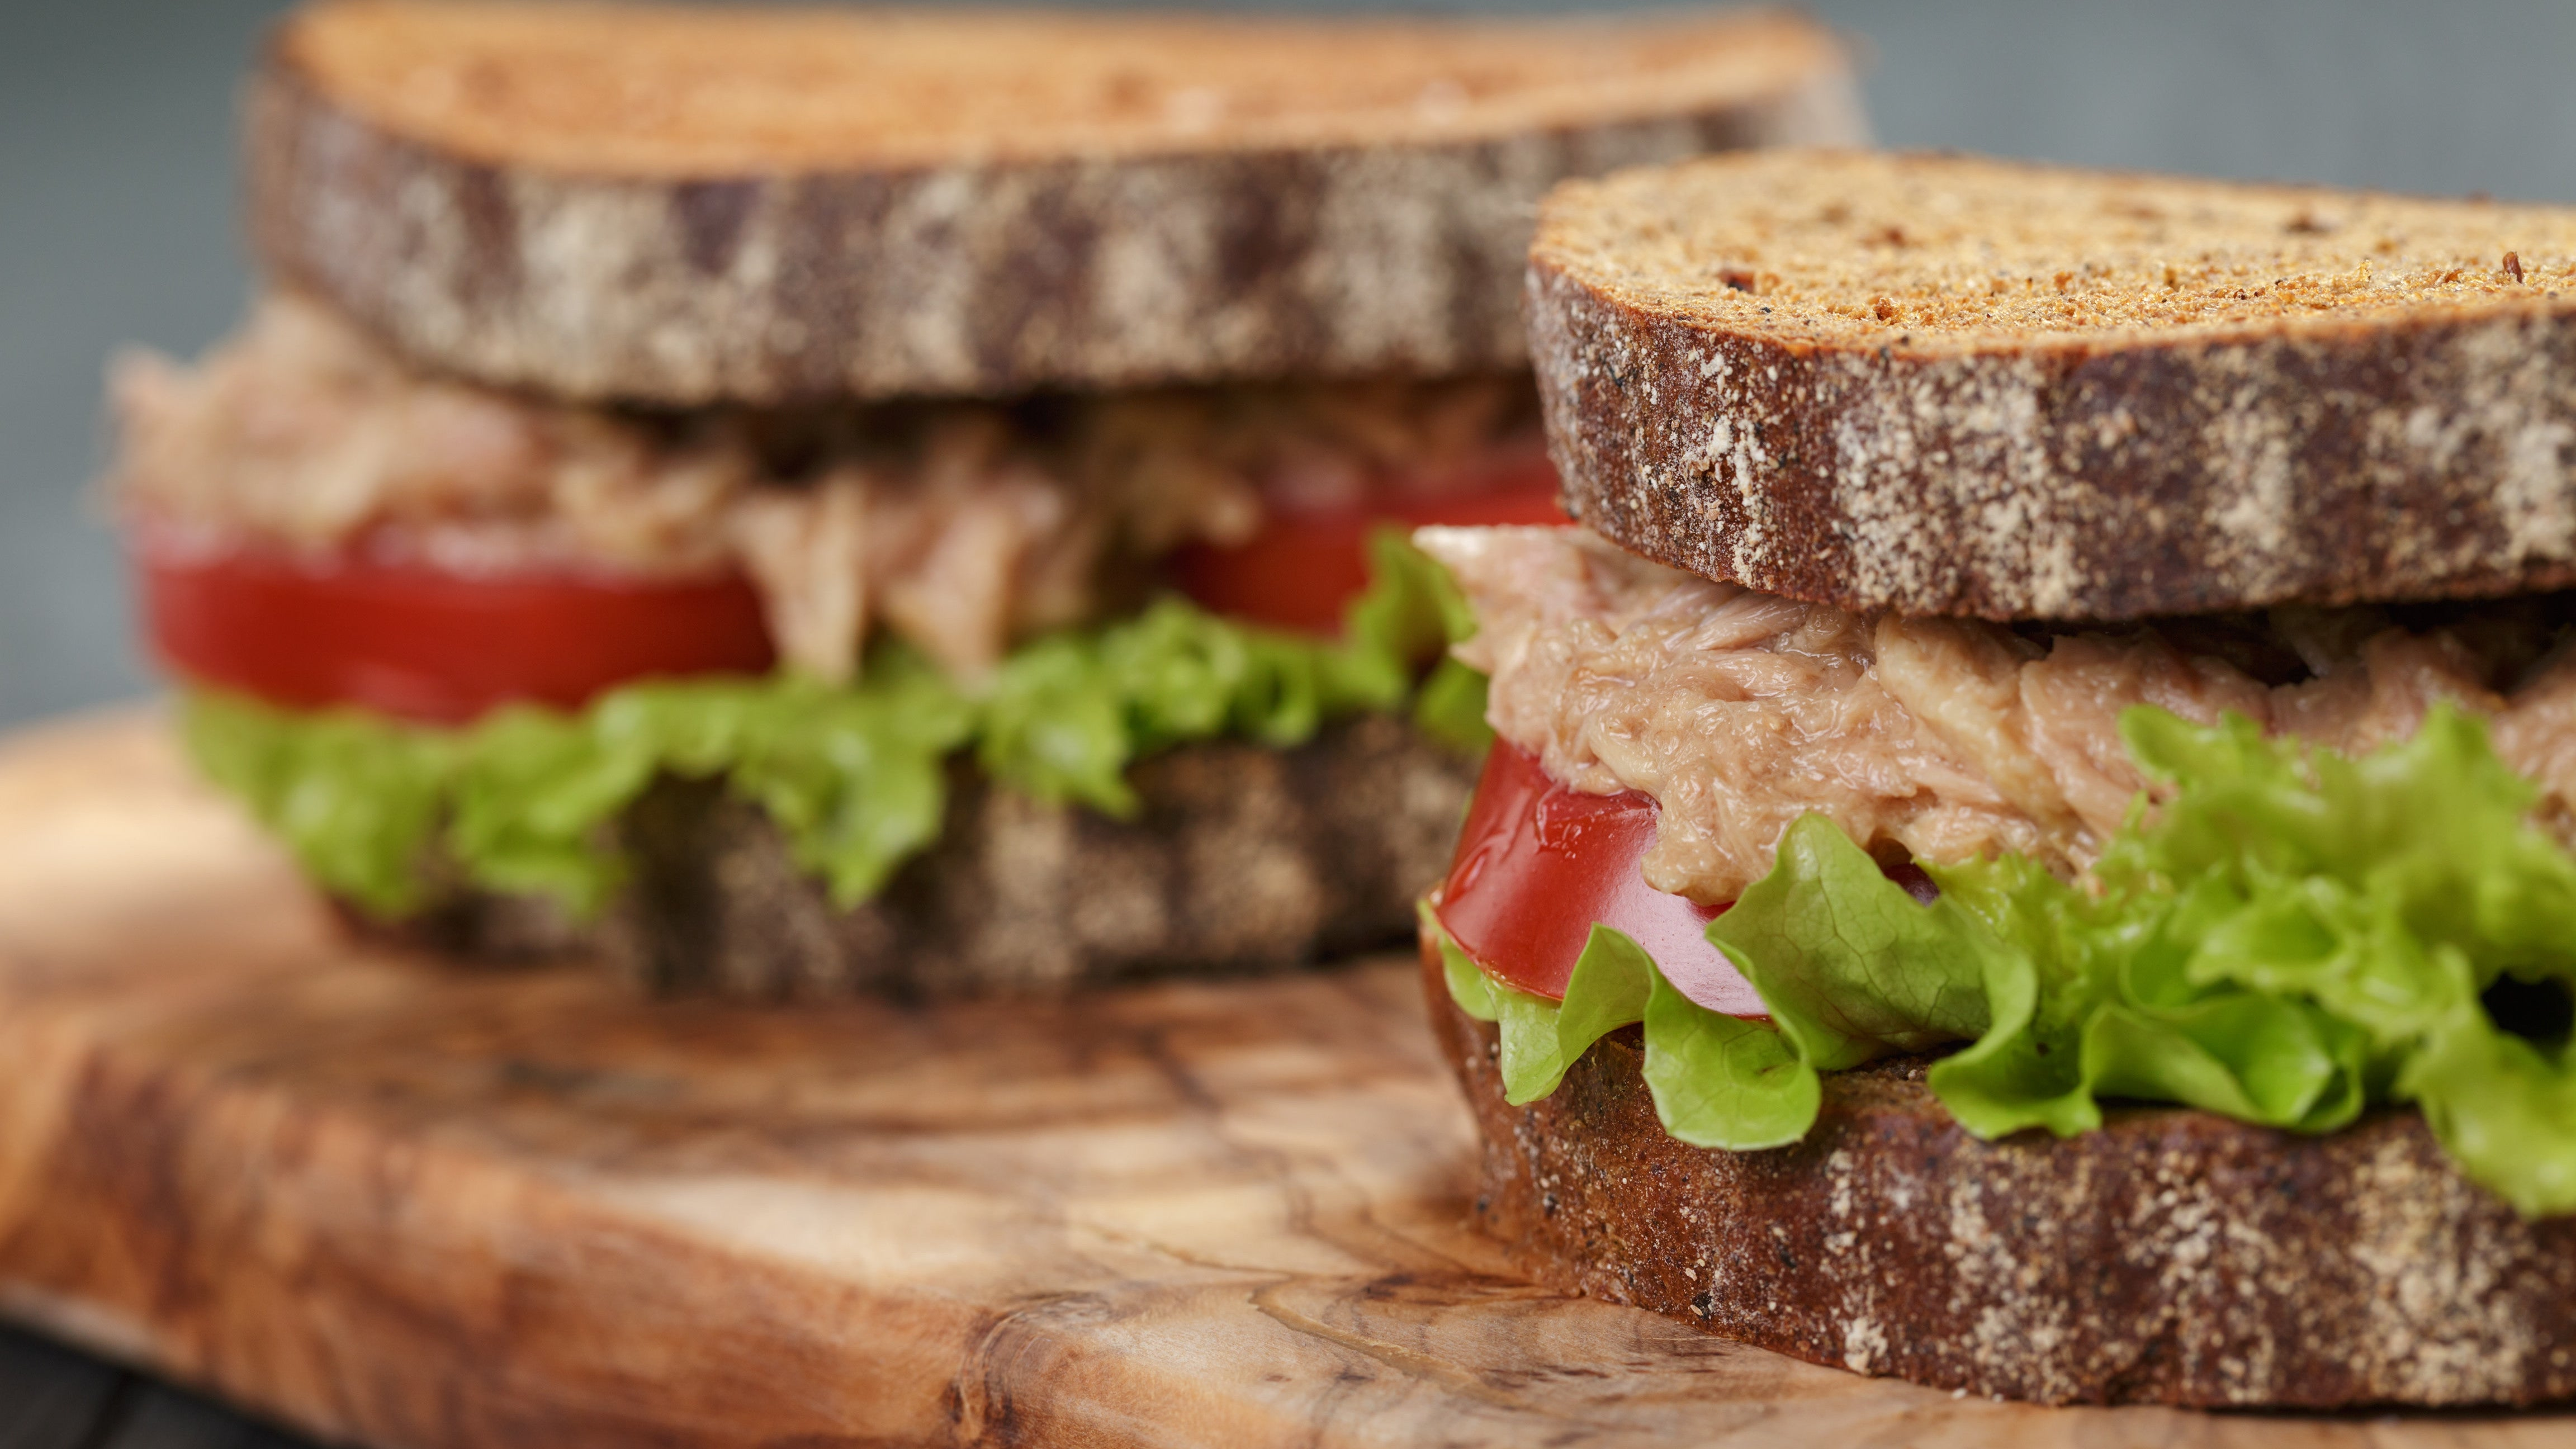 How To Add Umami To Tuna Salad